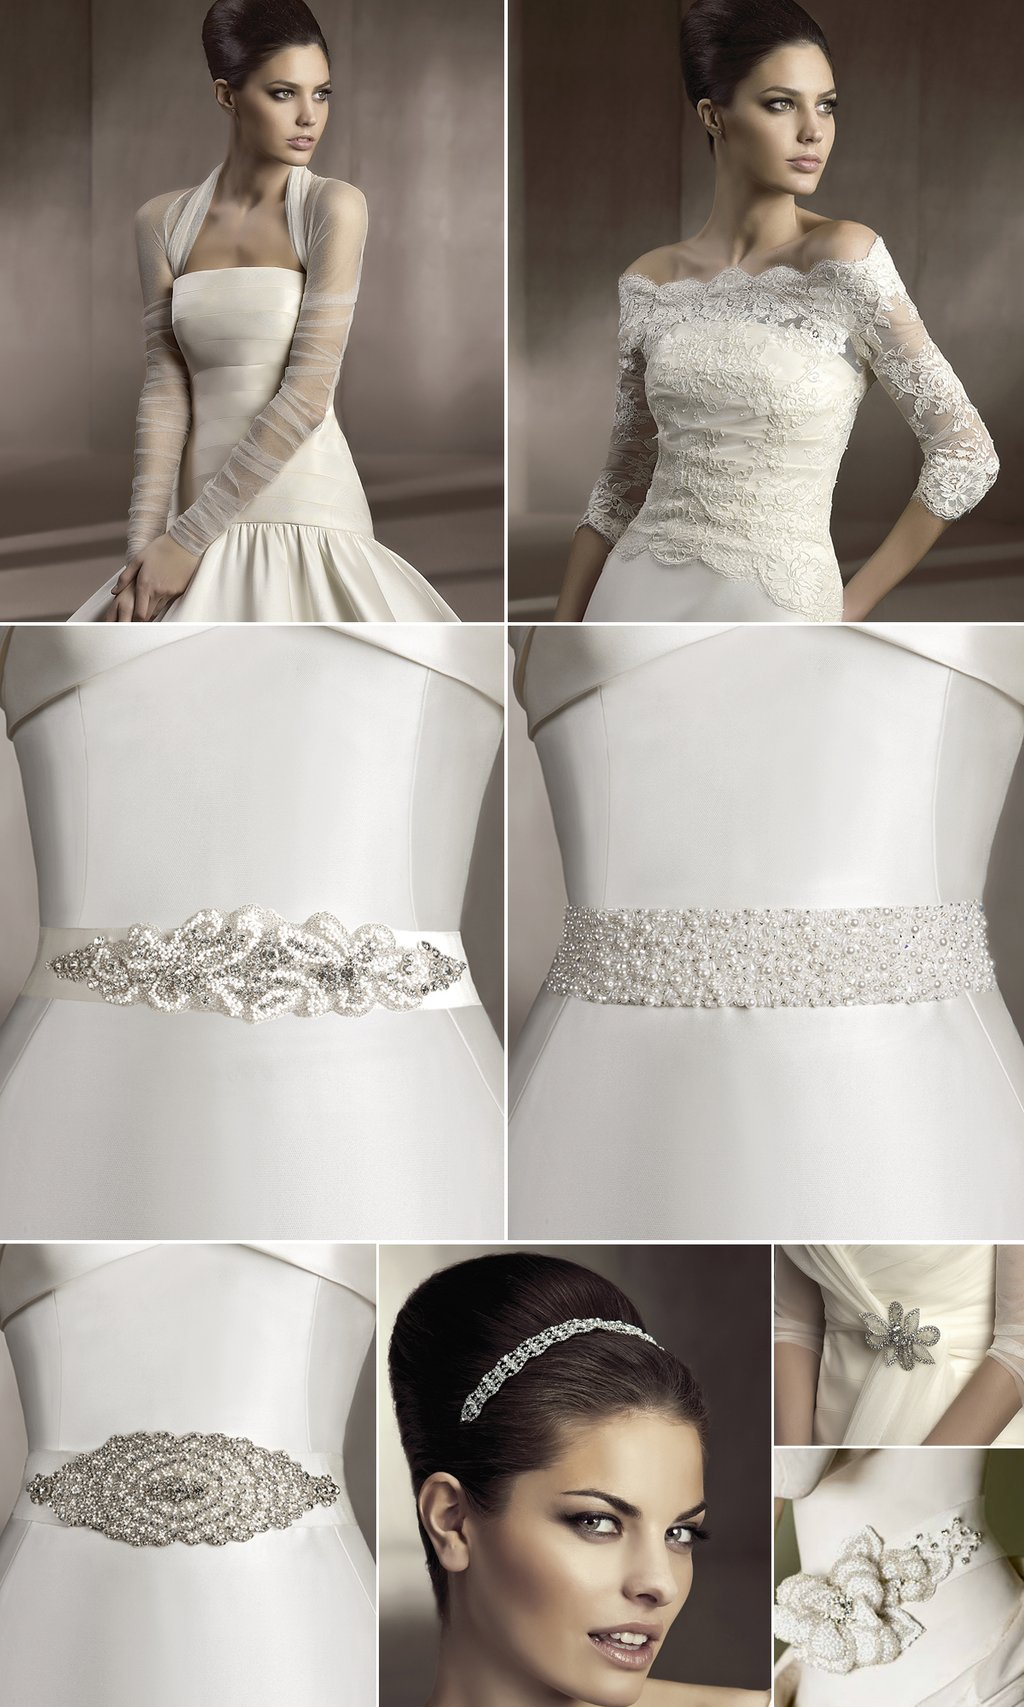 wedding chair sash accessories dunelm garden covers 2012 bridal hair and dress sashes by